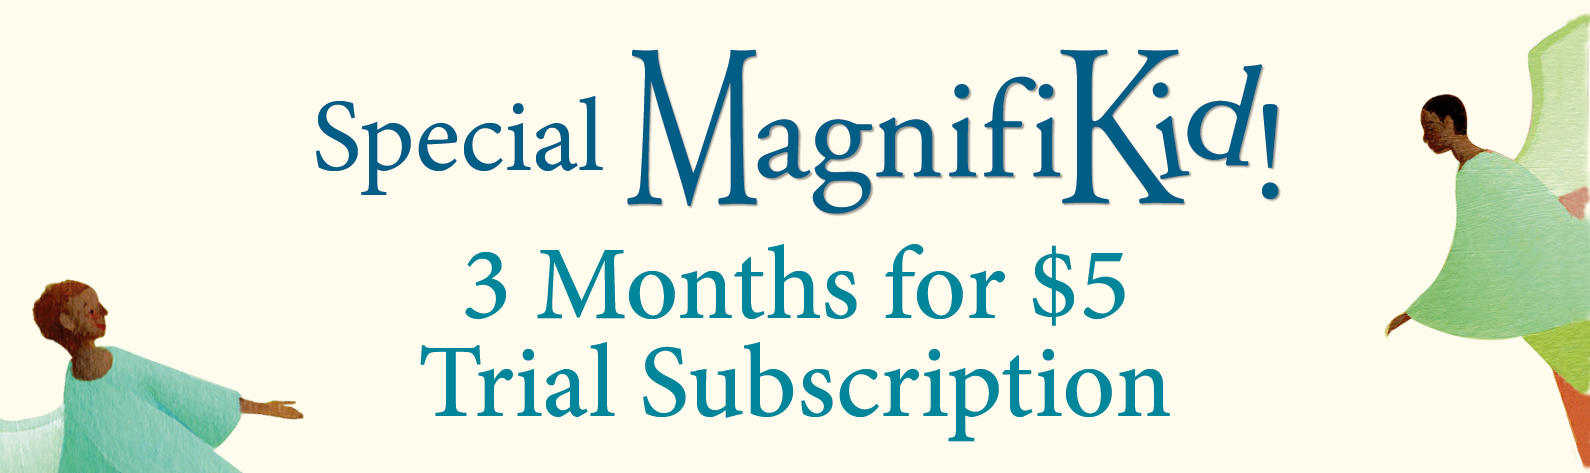 Special MagnifiKid Trial Subscription